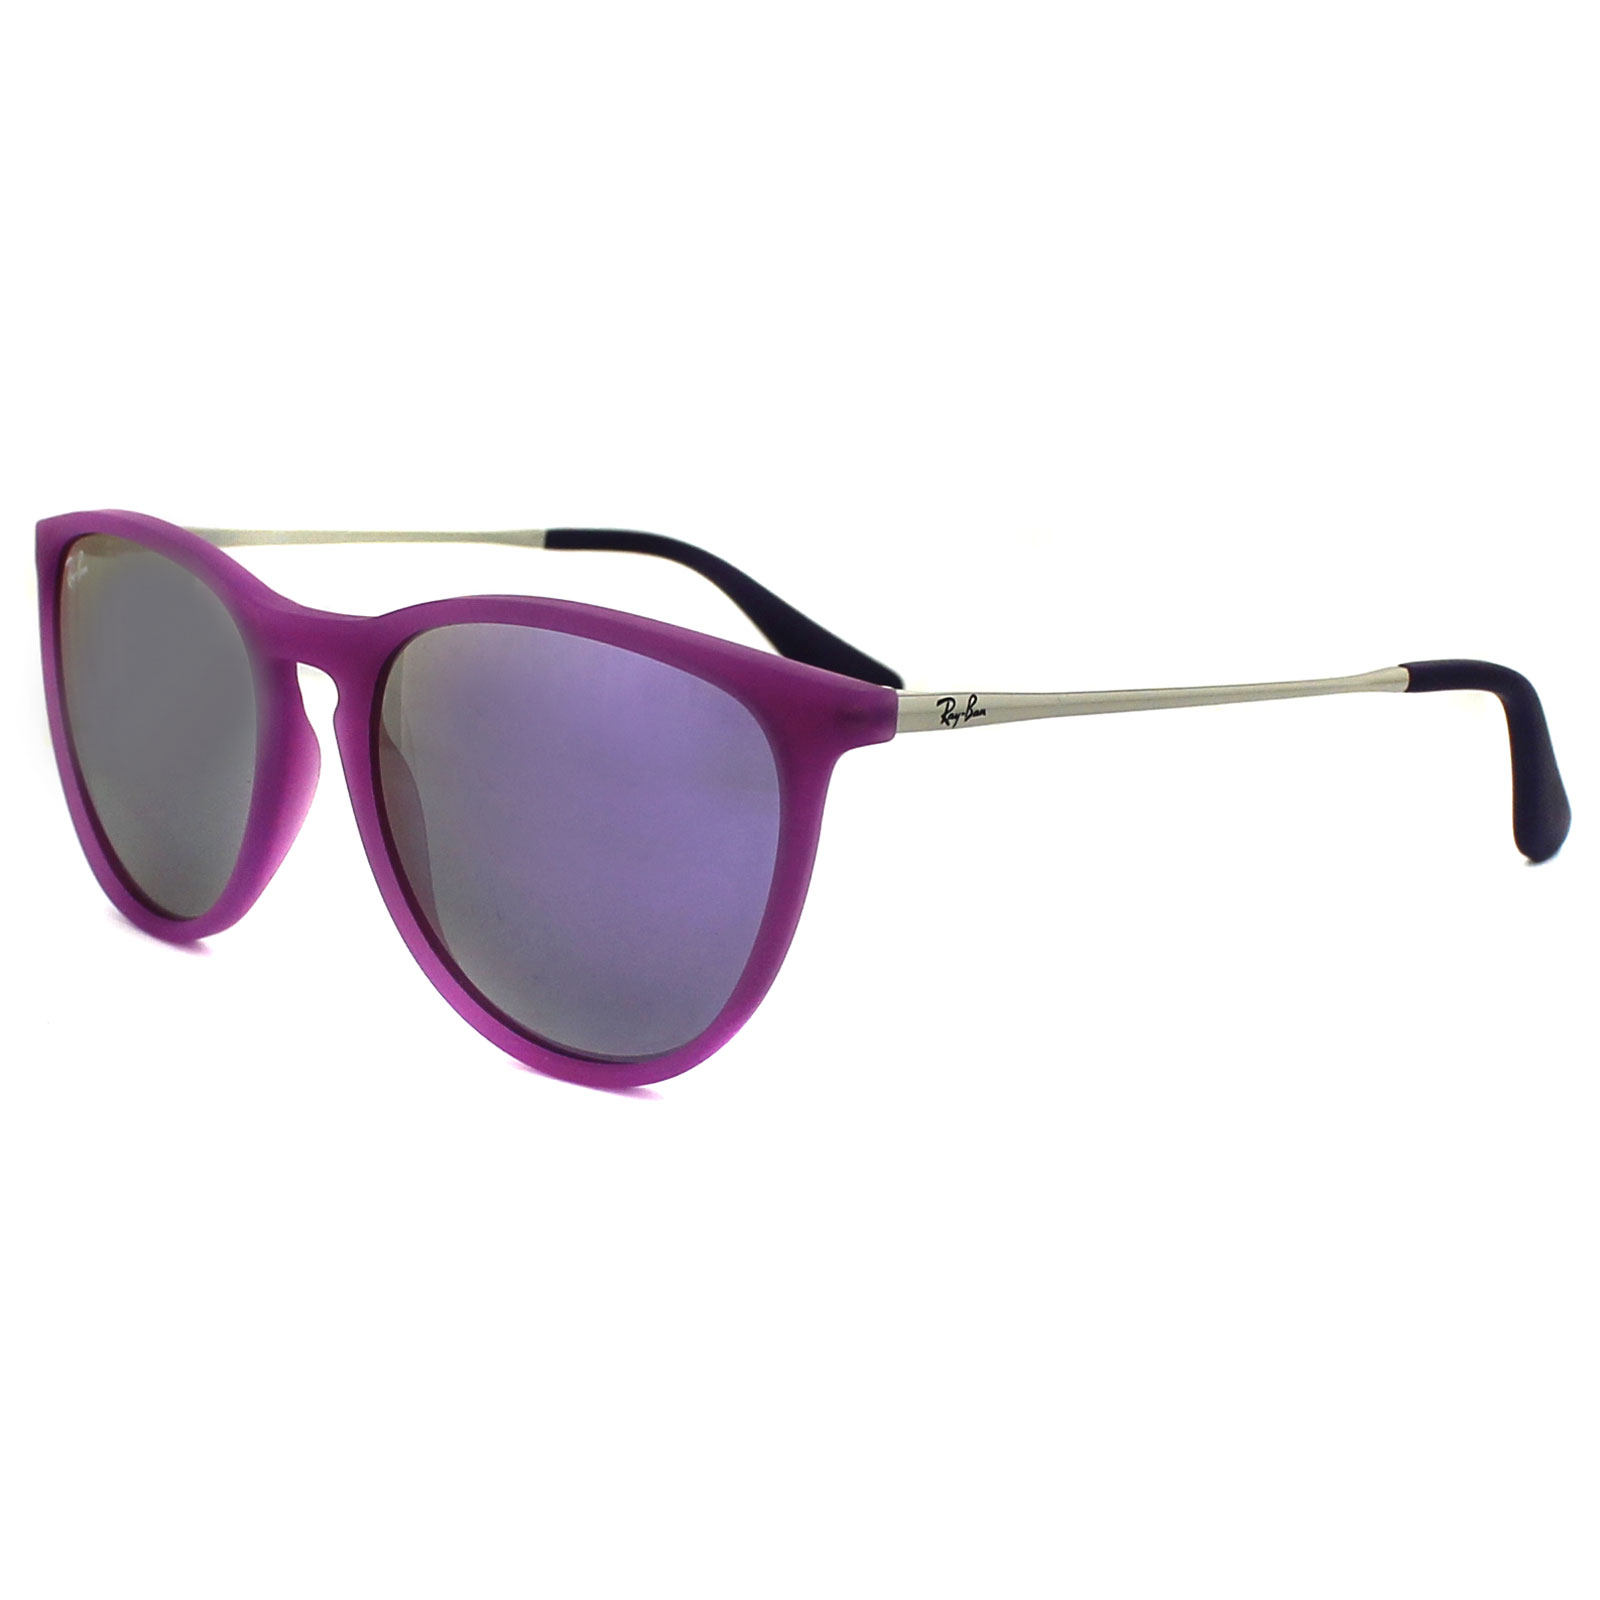 9b6aacc60f Sentinel Ray-Ban Junior Sunglasses Izzy 9060 70084V Rubber Violet Violet  Mirror